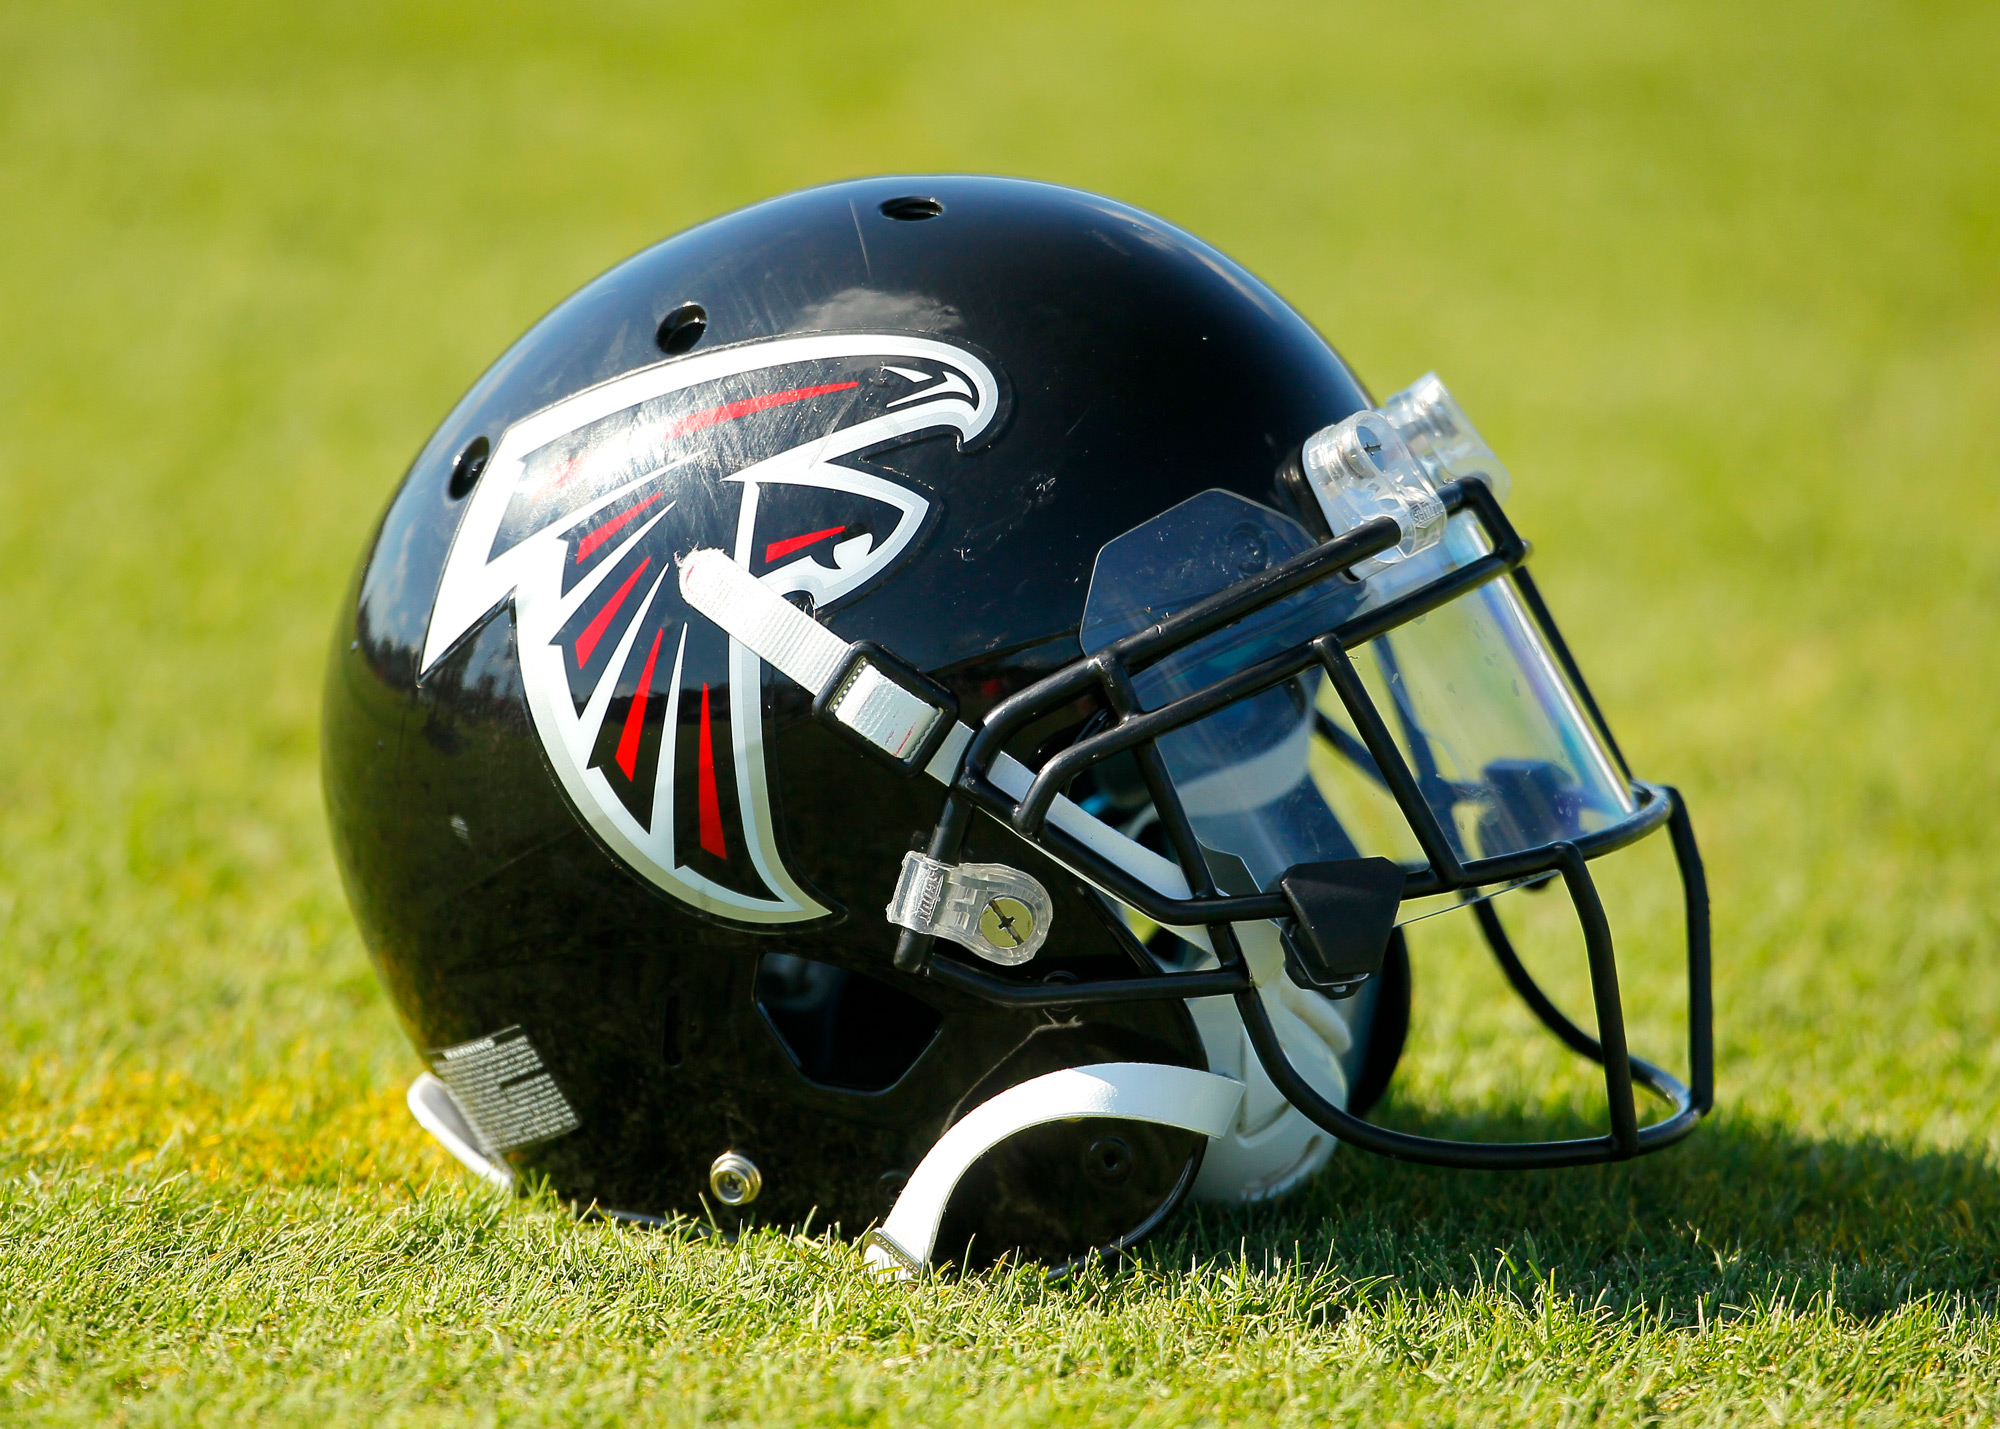 An Atlanta Falcons helmet sits on the field during training camp at Falcons headquarters in Flowery Branch, Georgia, on July 28, 2014.